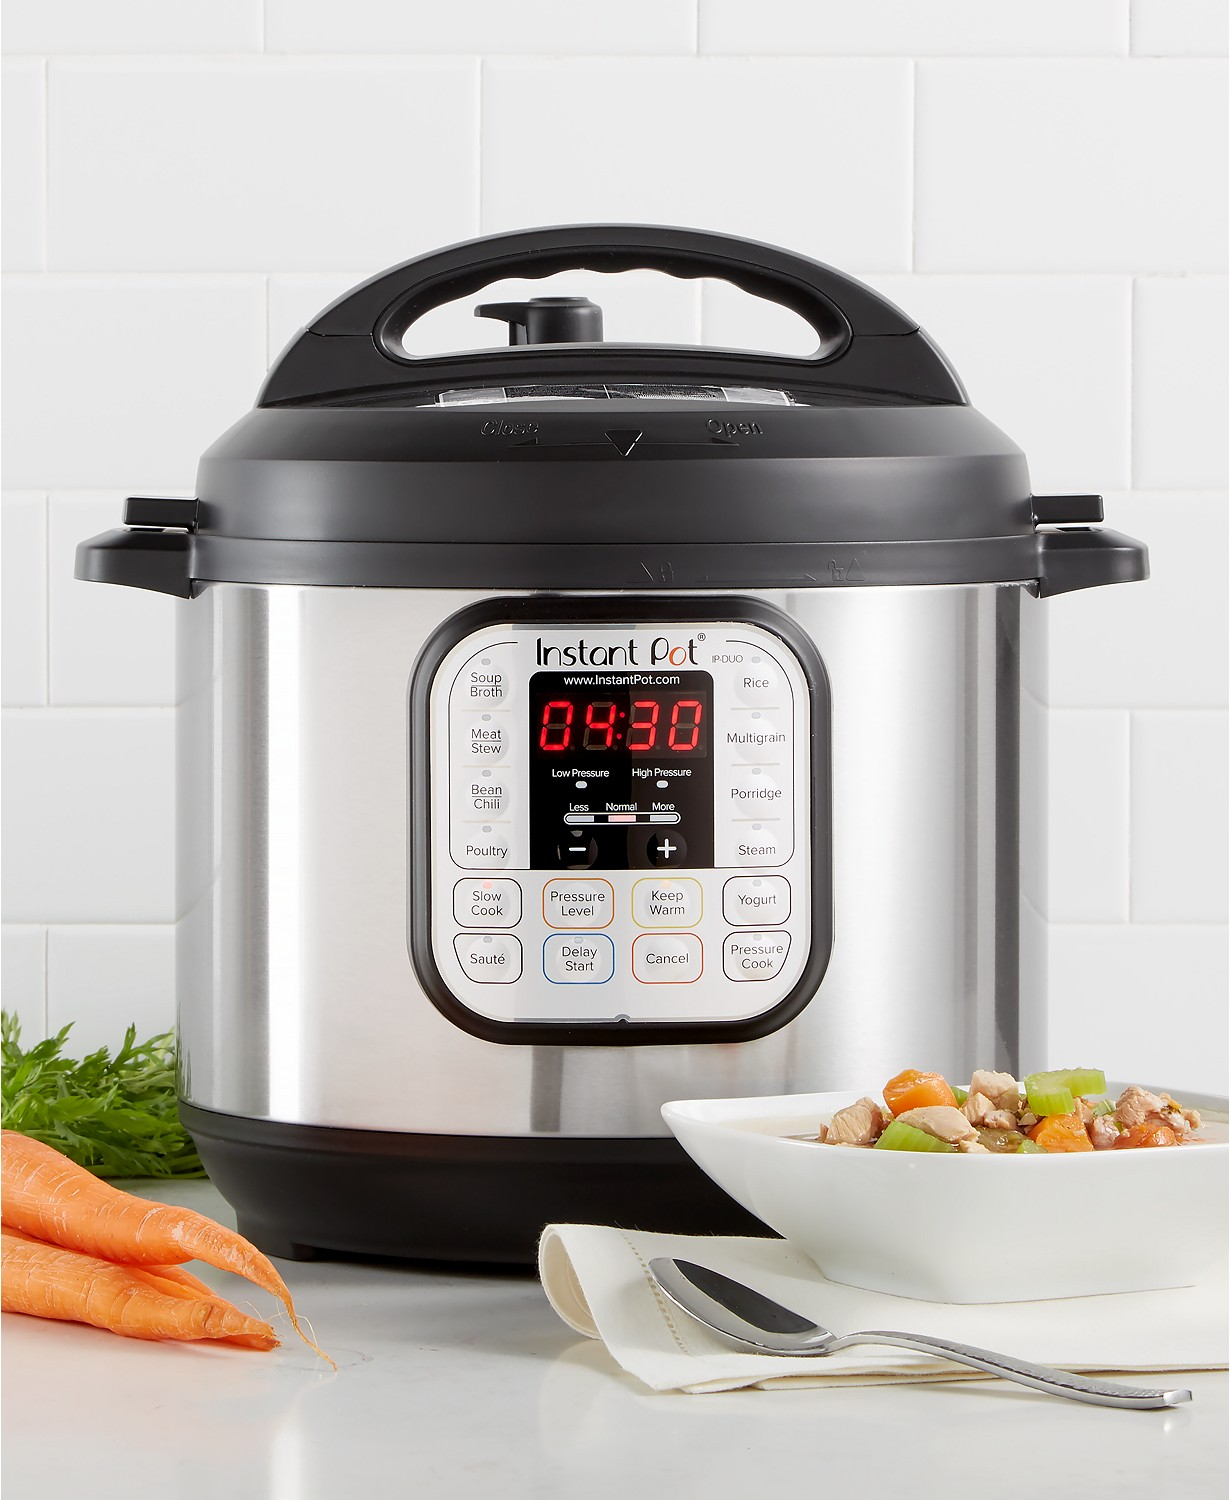 Instant Pot recipes and tricks